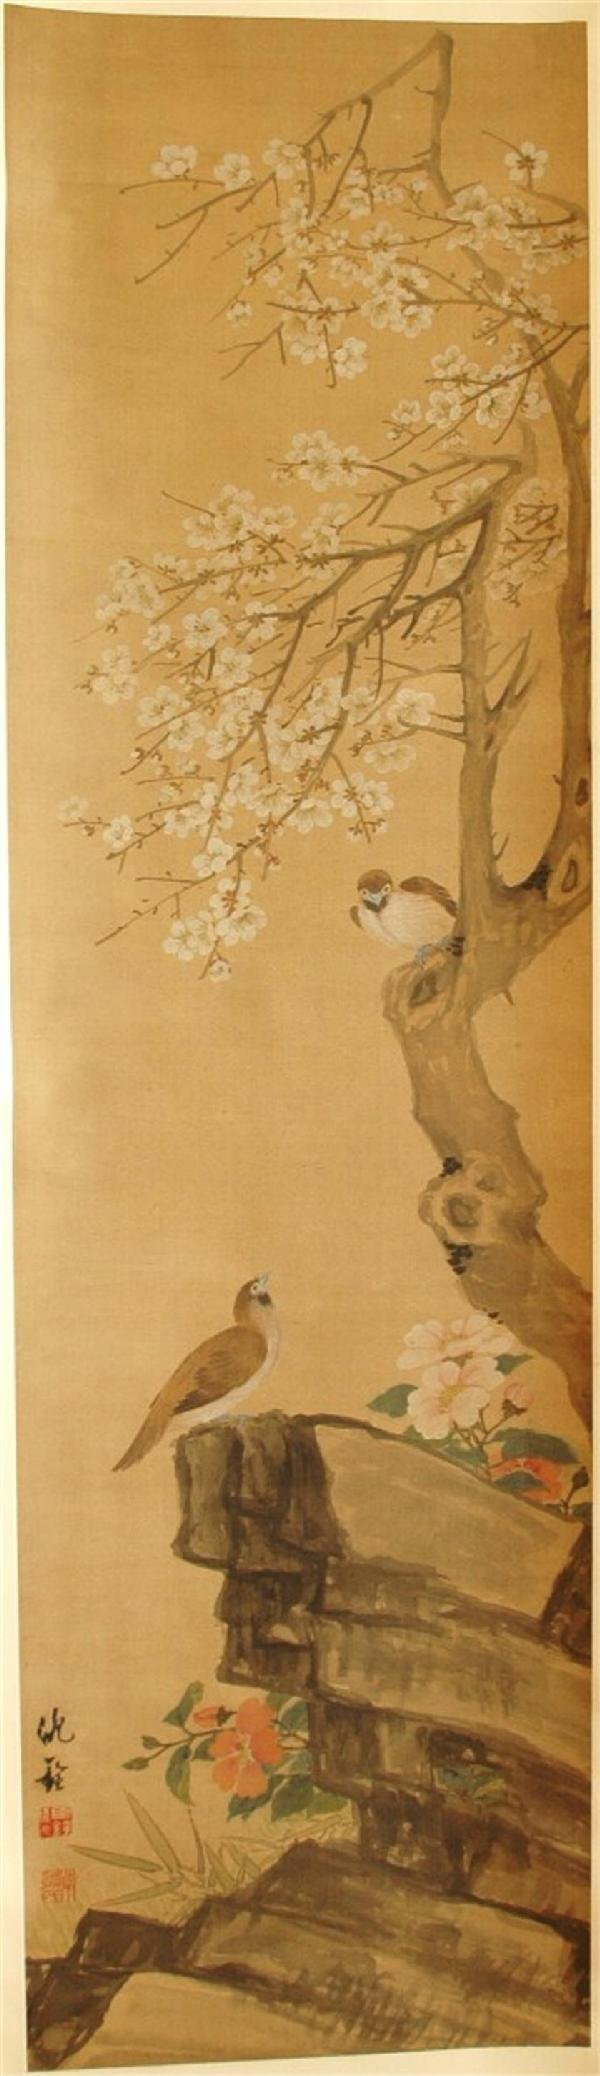 942: Chinese hanging scroll painting